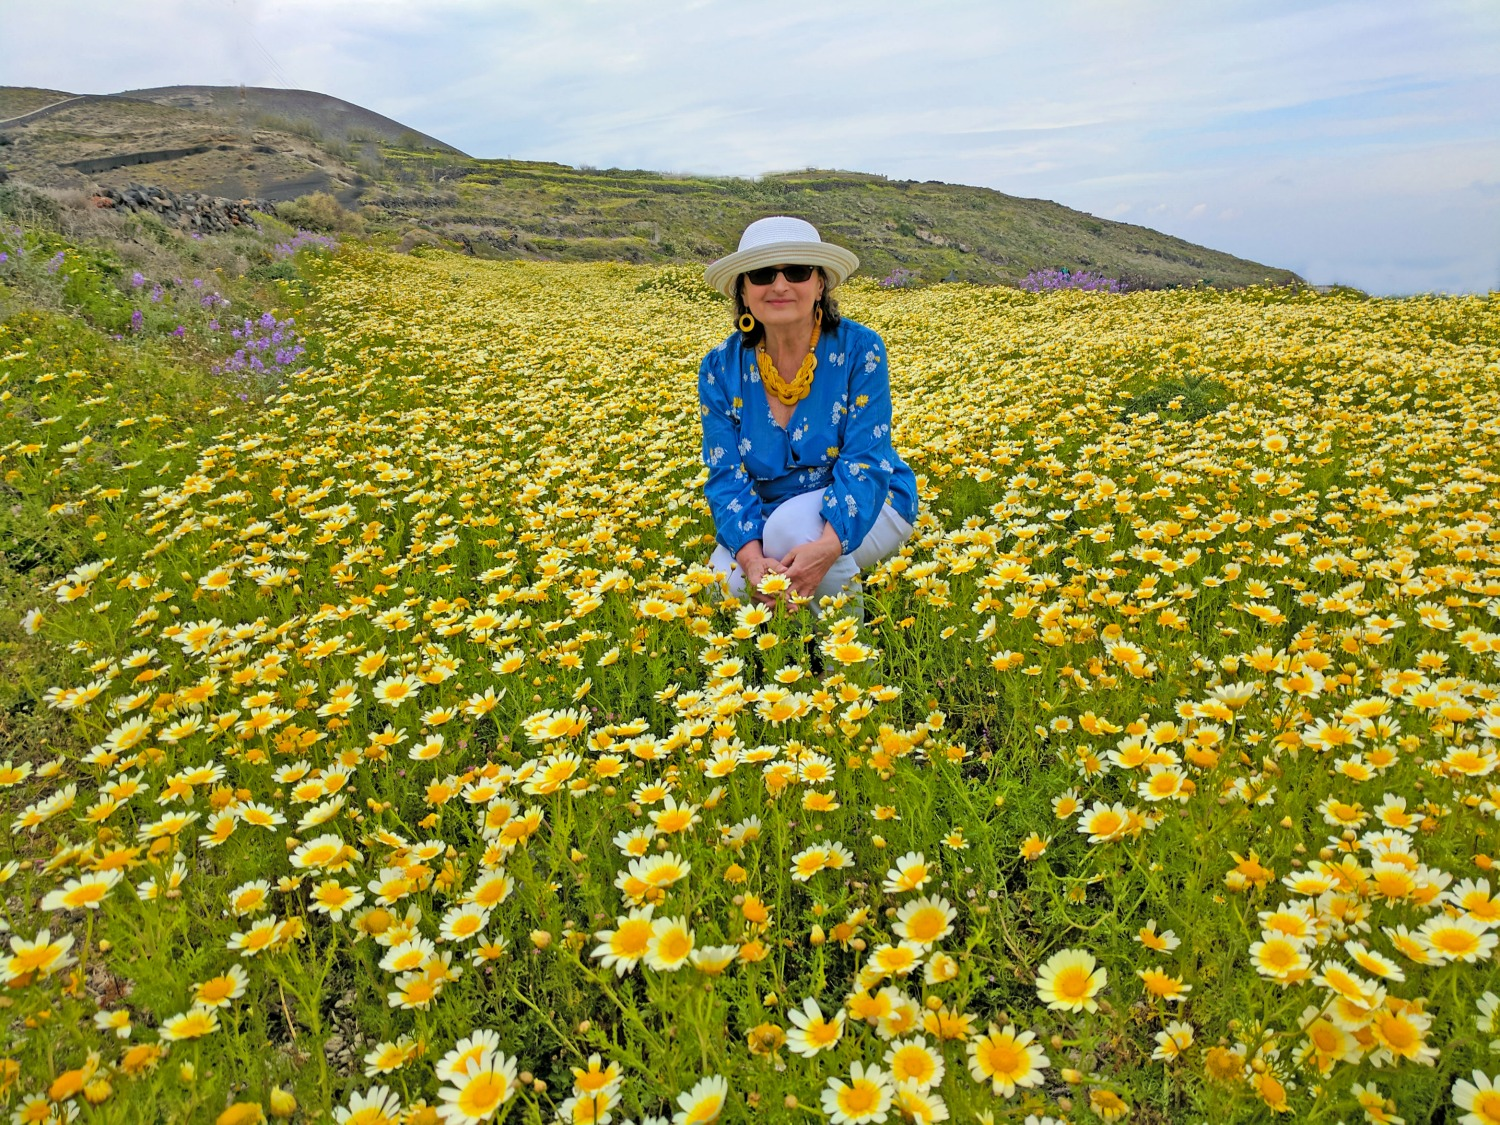 A lady in blue in sea of wildflowers along a hiking trail in Santorini Greece.